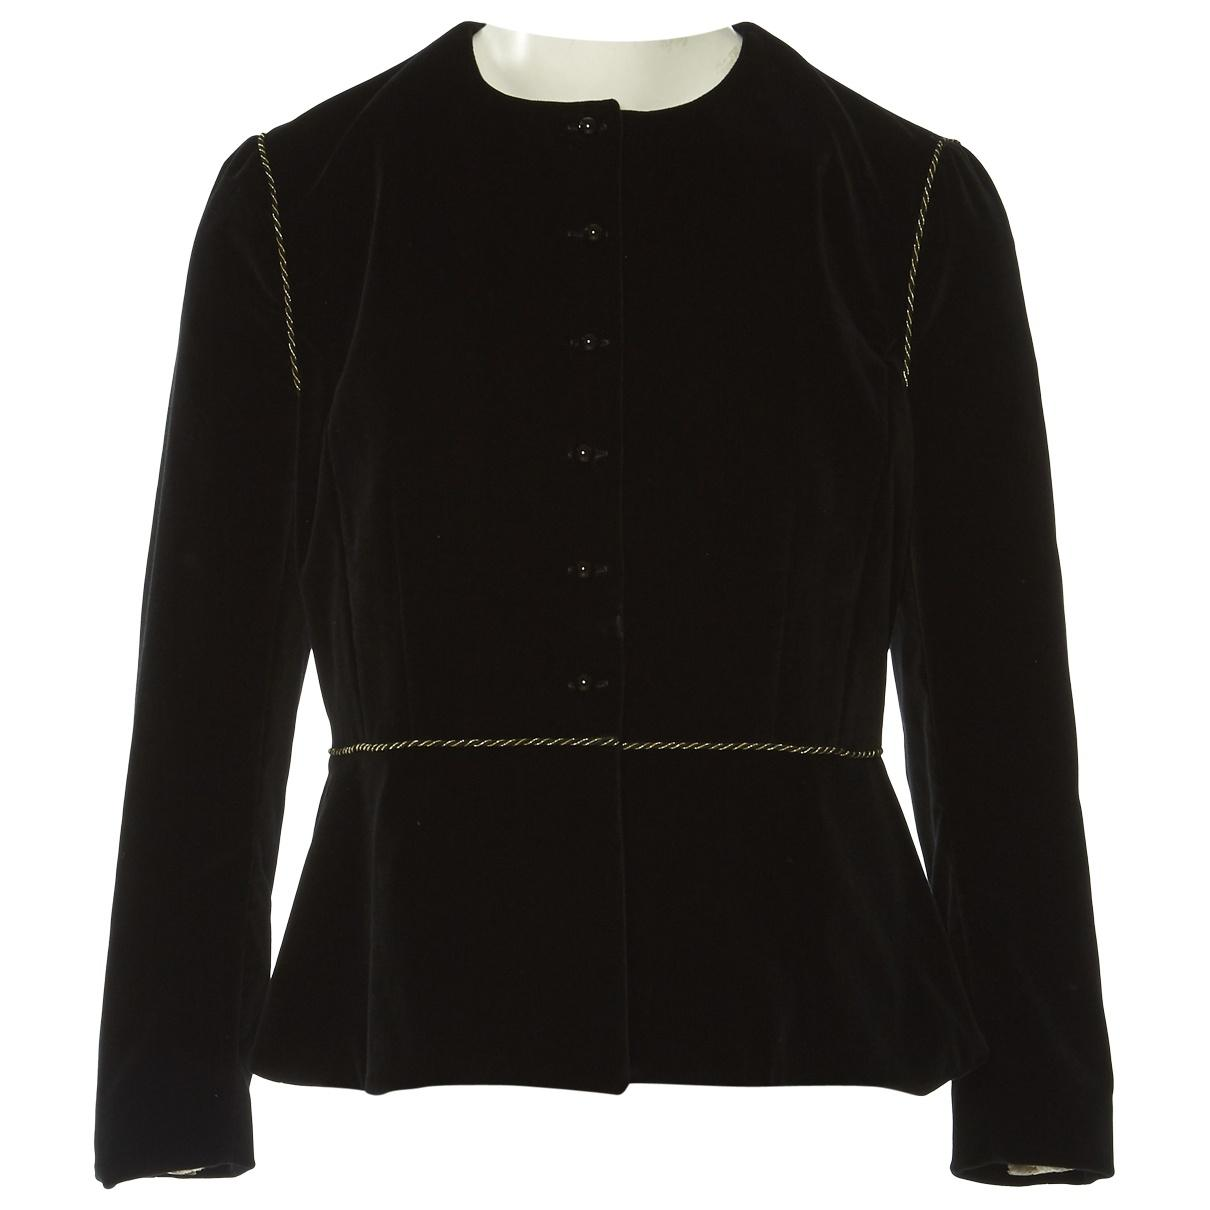 ce3024bdb6 Isa Arfen. Women's Pre-owned Black Cotton Jackets. $329 $296 From Vestiaire  Collective